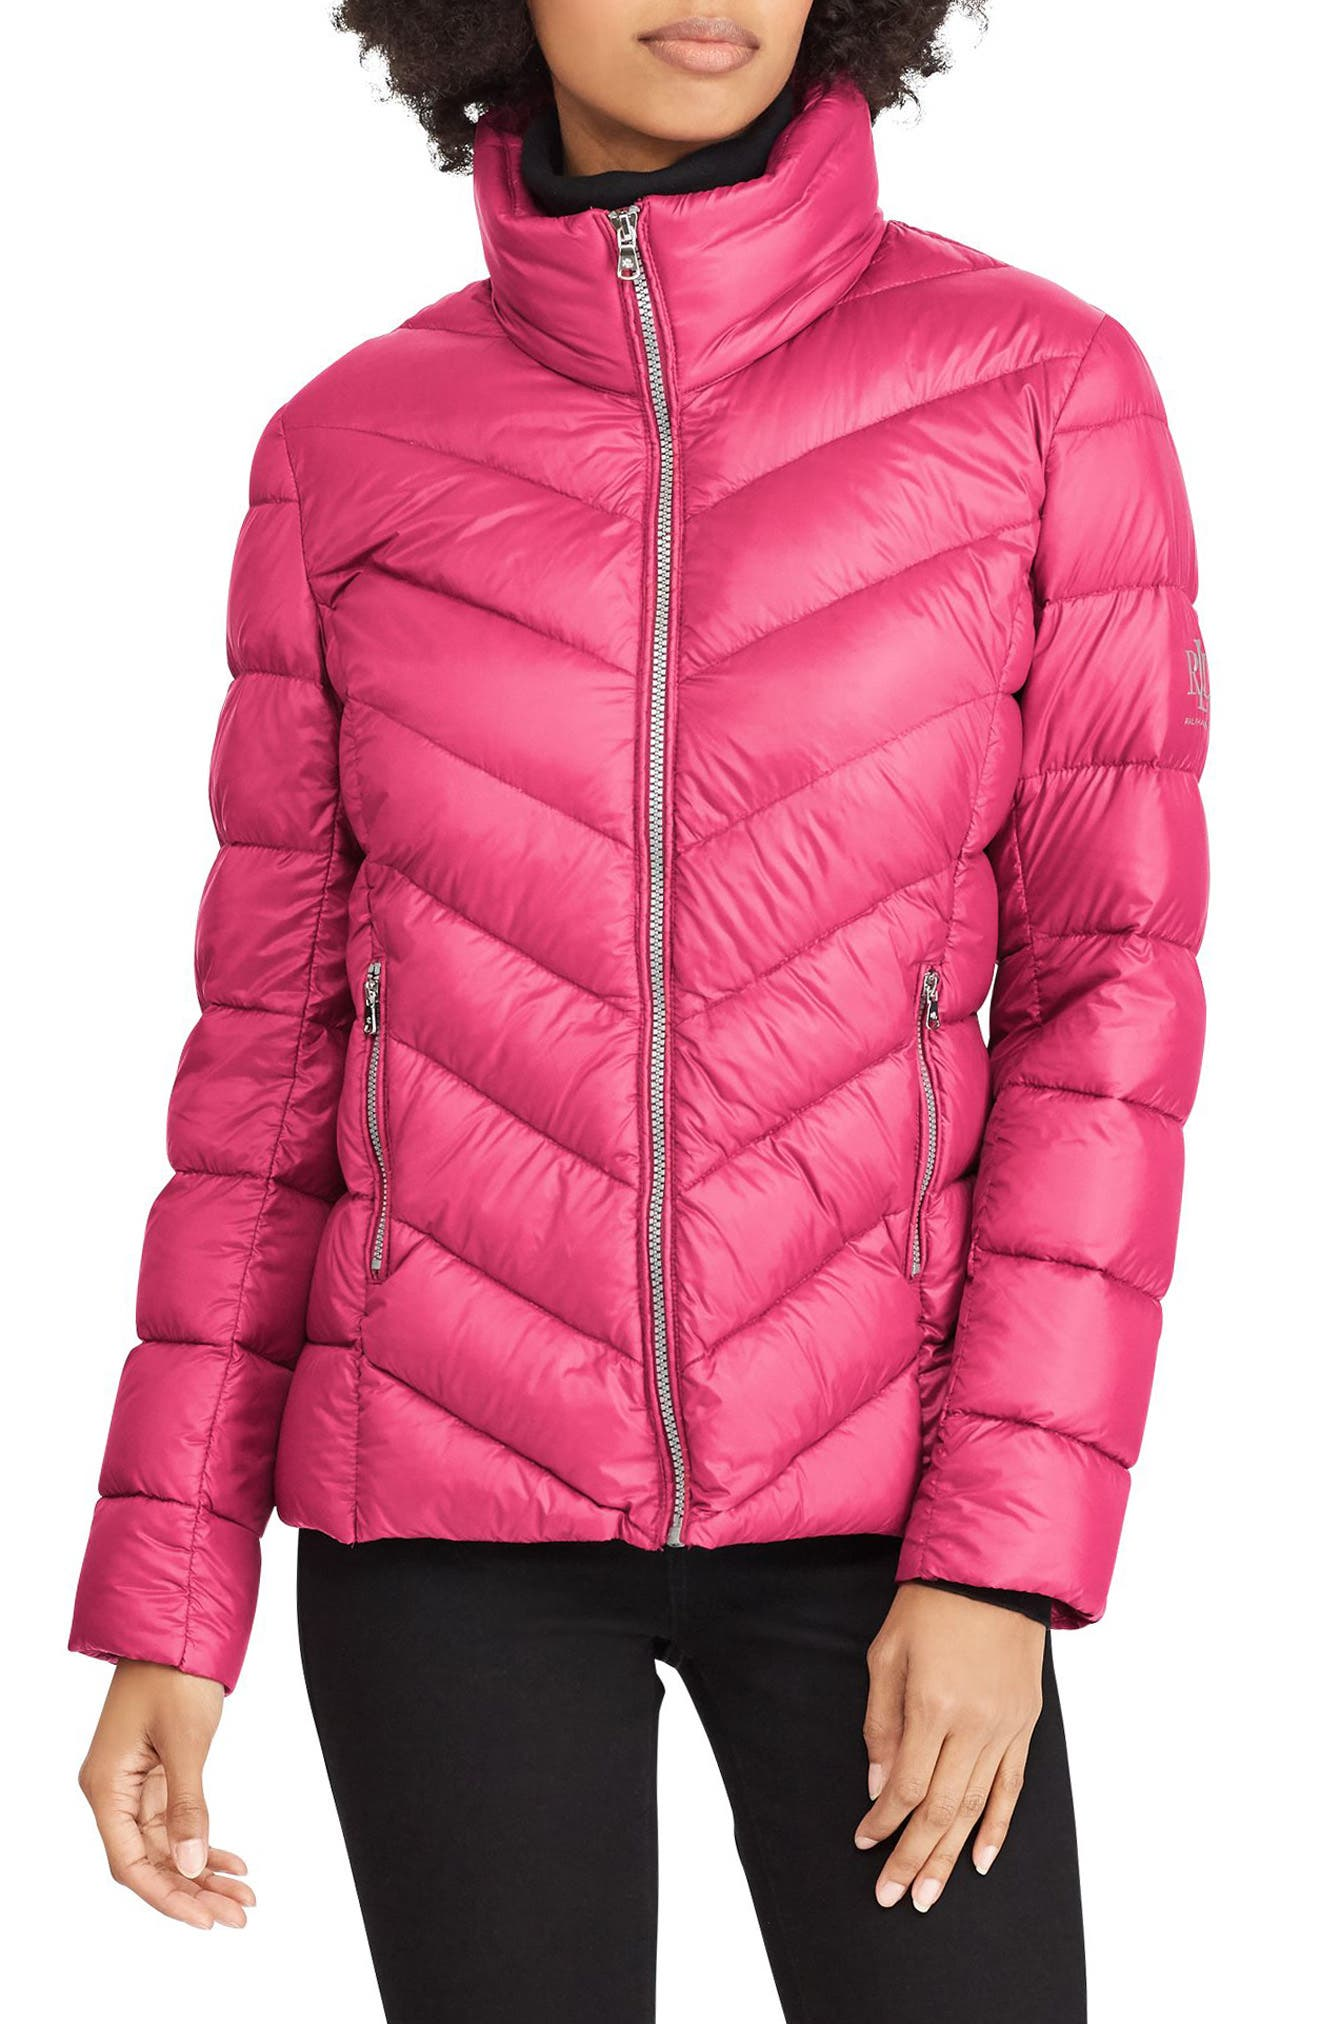 Chevron Quilted Packable Down Jacket,                         Main,                         color, BERRY